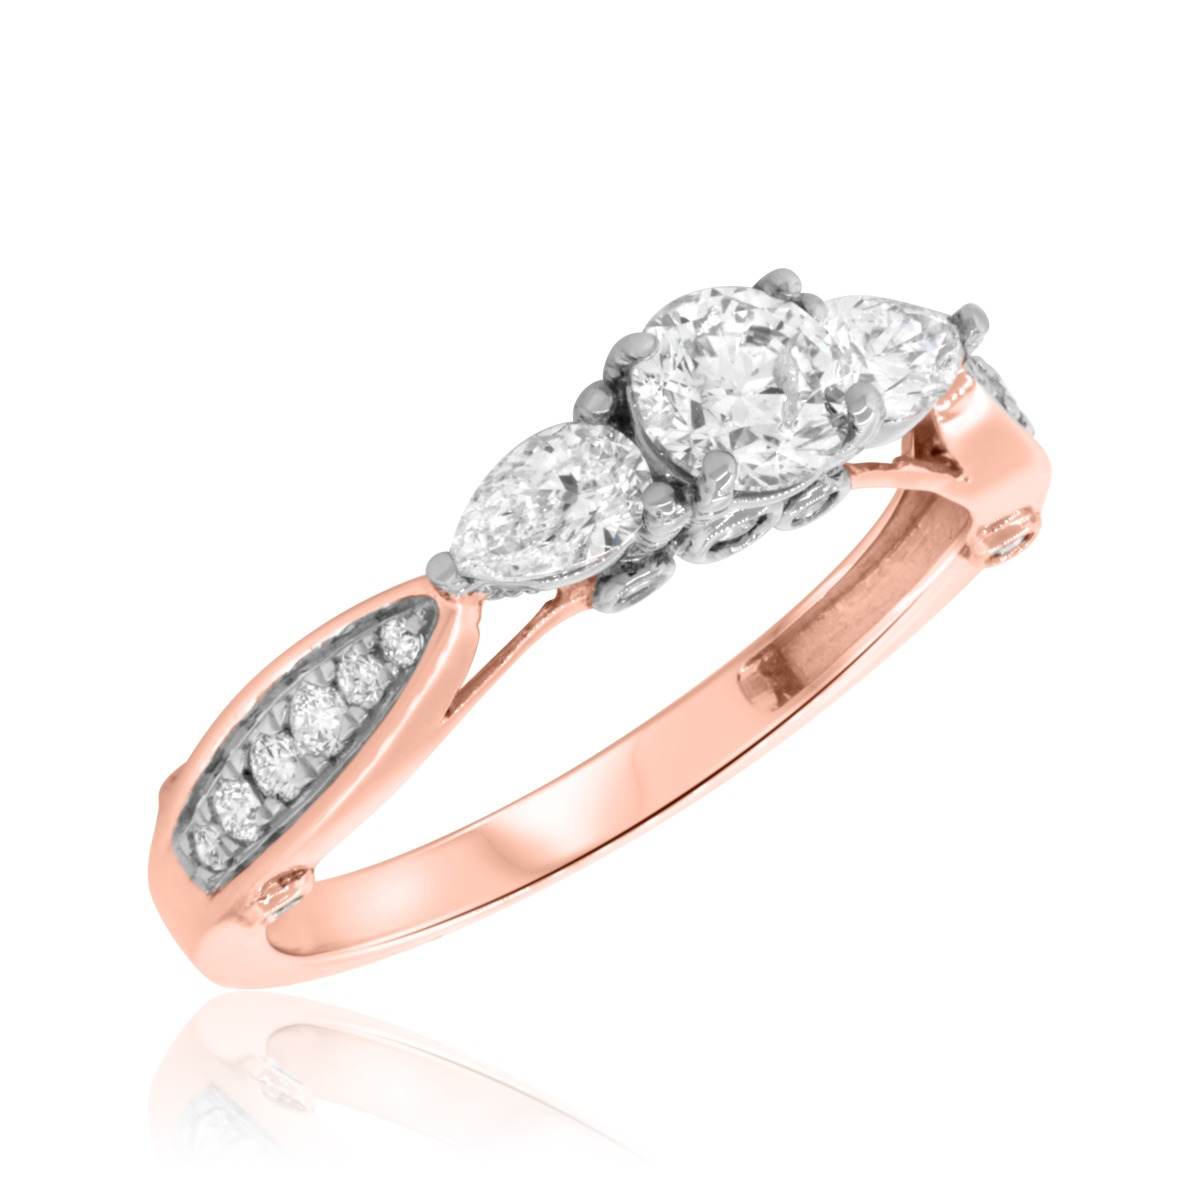 1 CT. T.W. Diamond Engagement Ring 14K Rose Gold